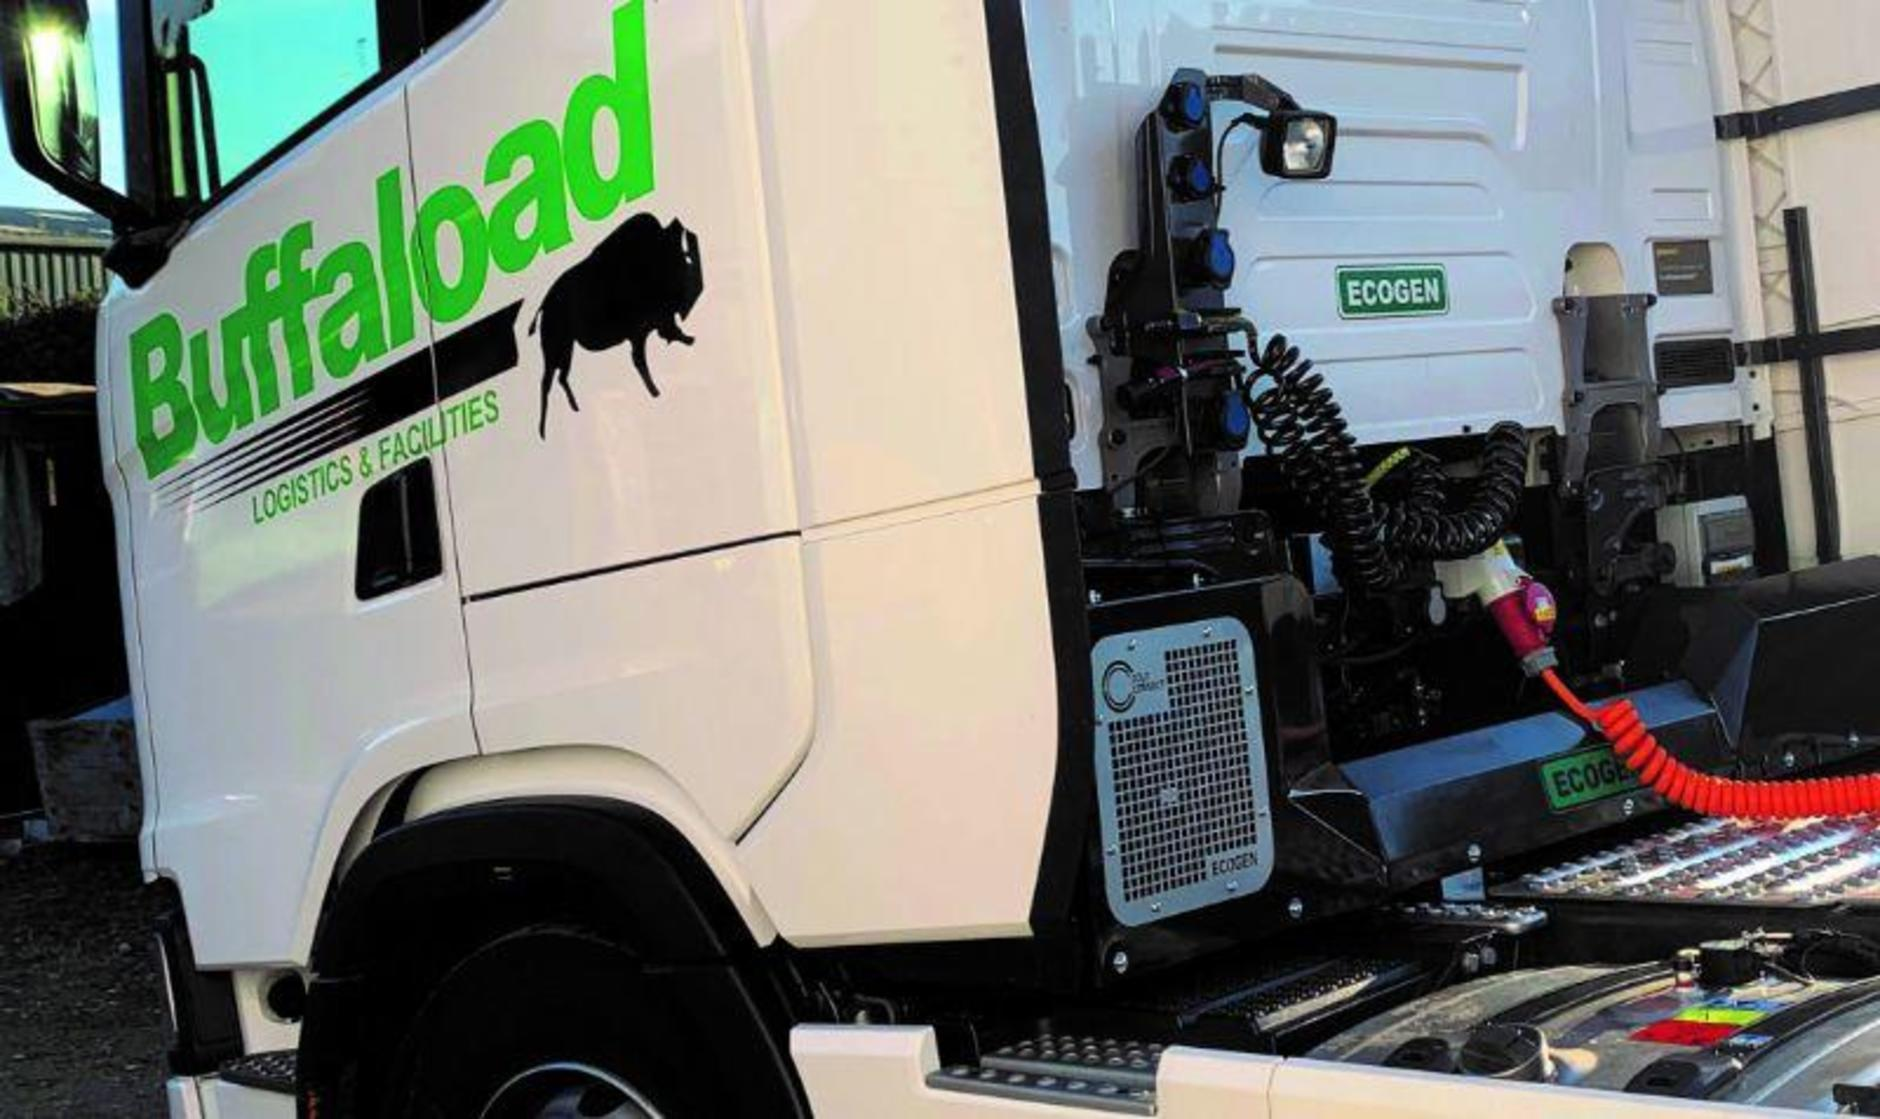 Ecogen device on Buffaload's Scanias